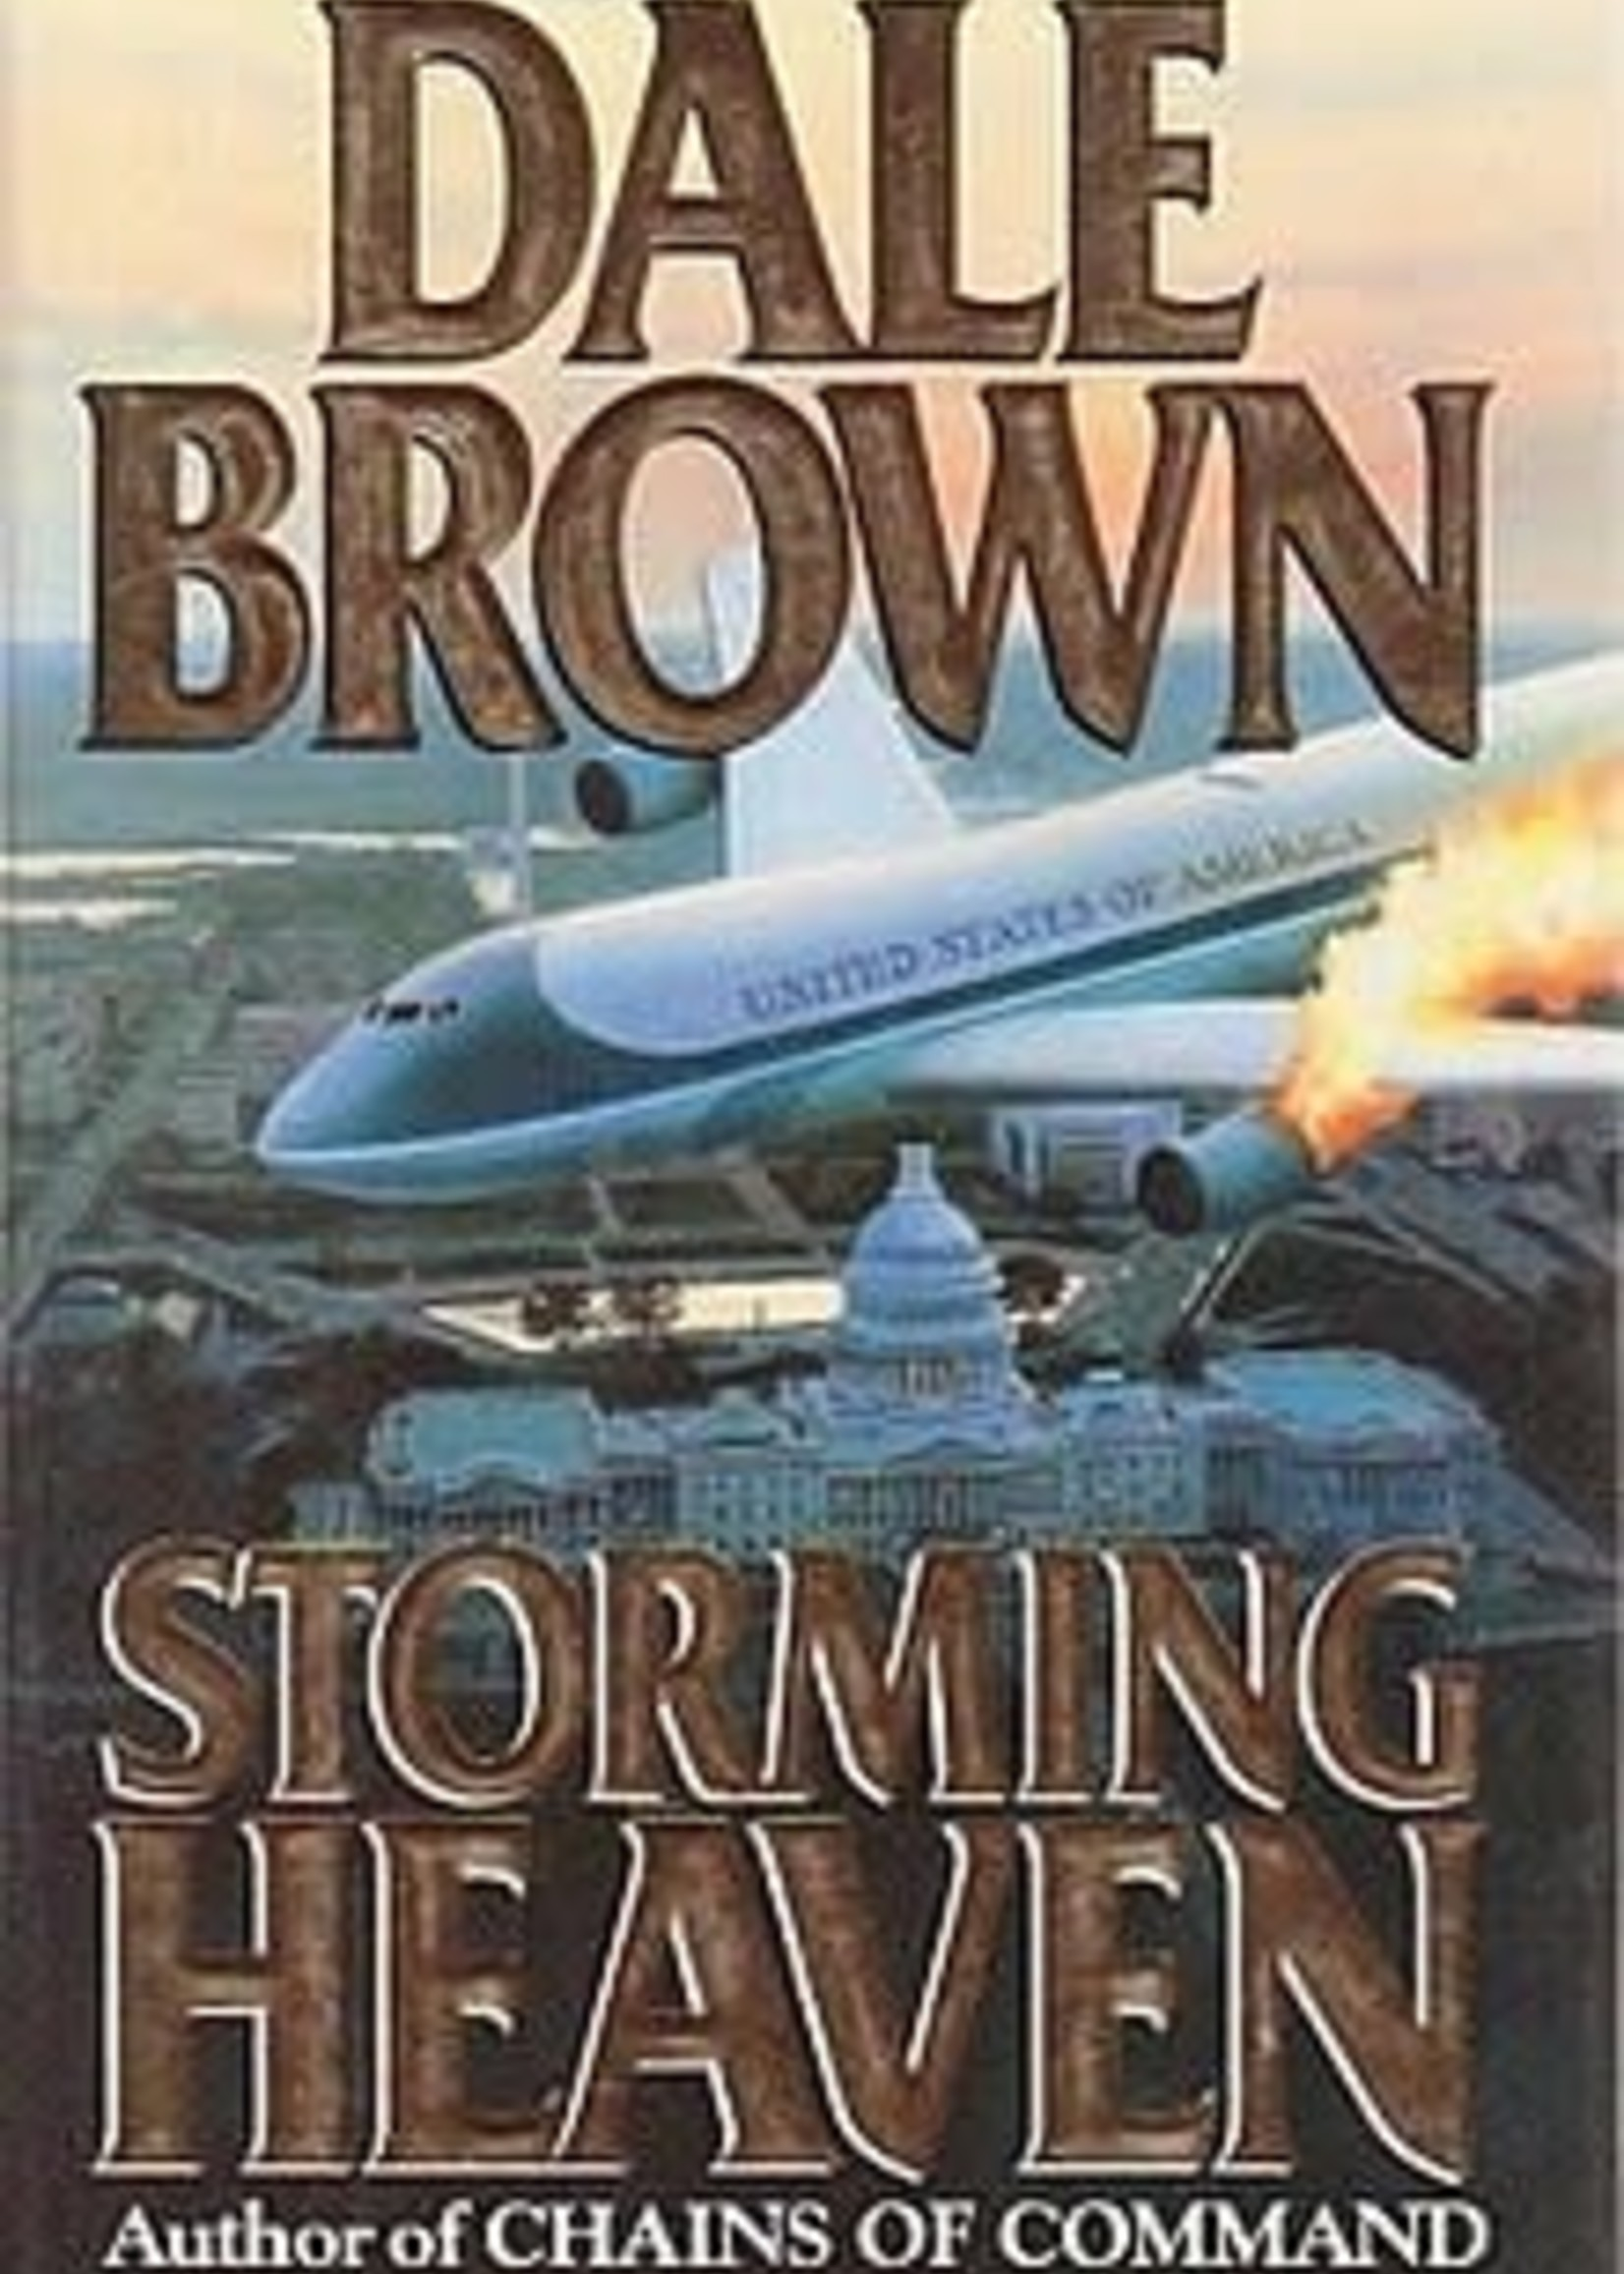 USED - Storming Heaven by Dale Brown